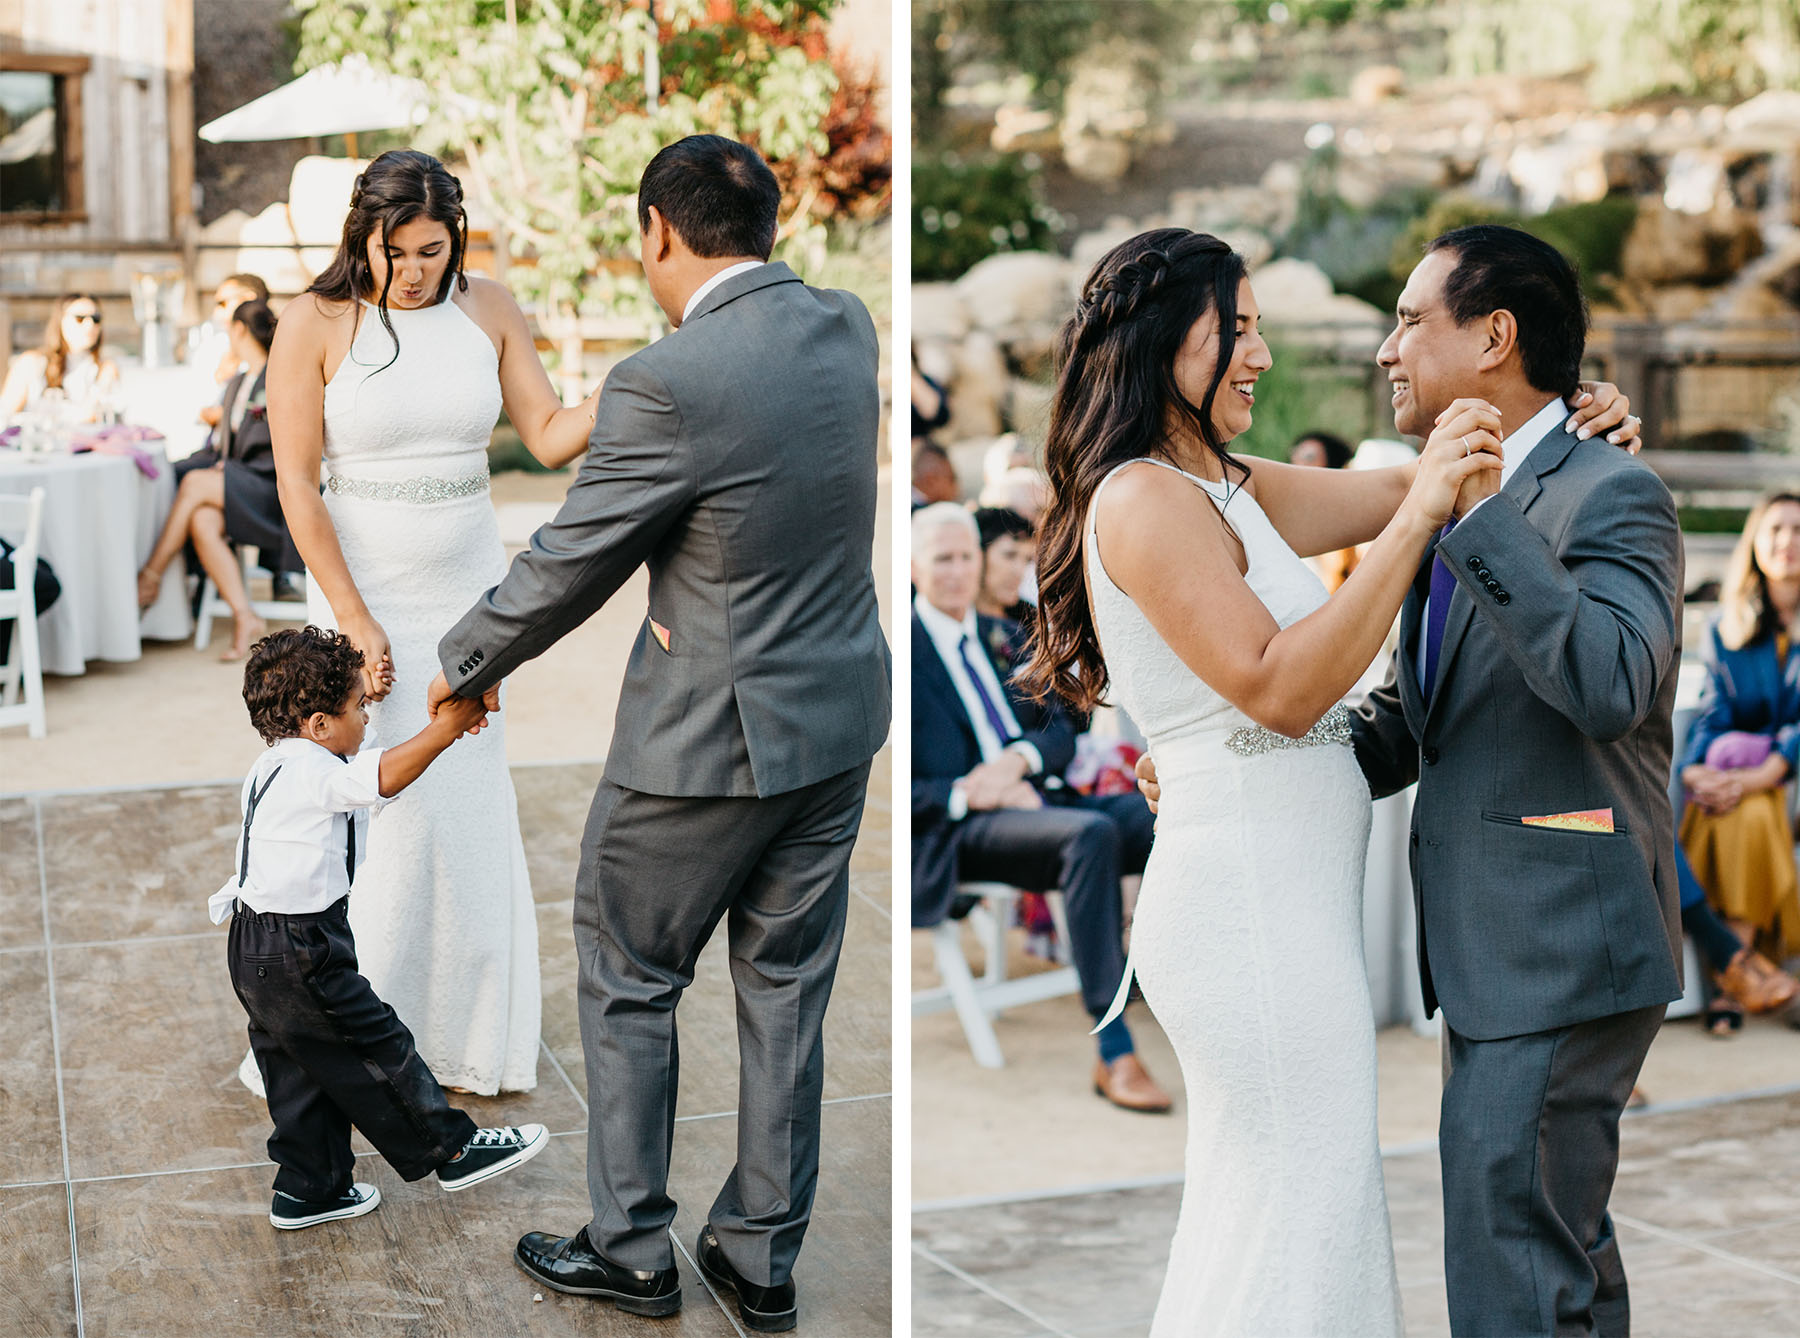 Paso-Robles-Wedding-Diana-Lake-Photography-20.jpg